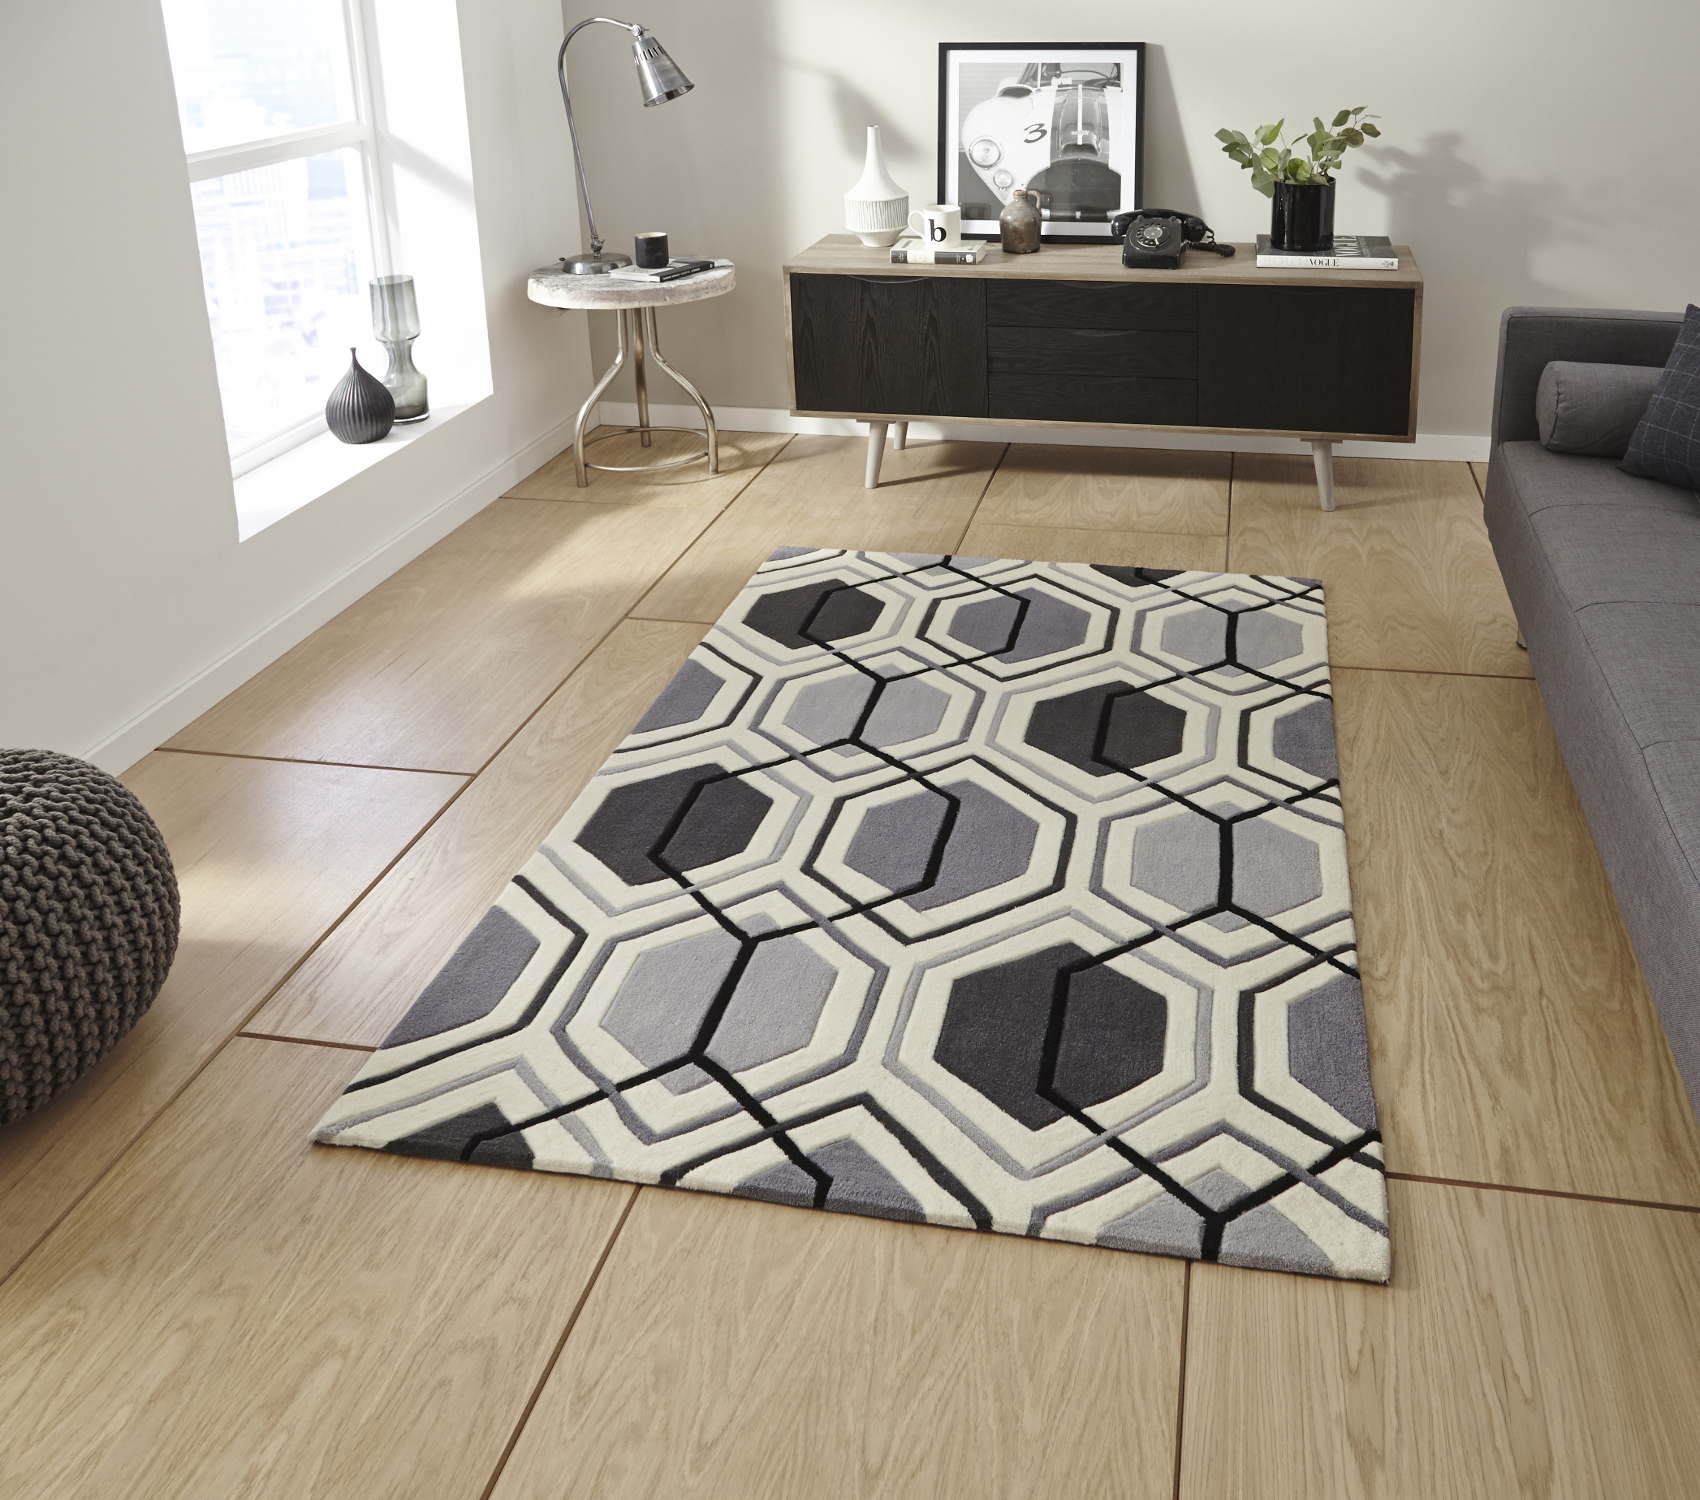 Hong Kong Hexagon Rug 100 Acrylic Hand Tufted